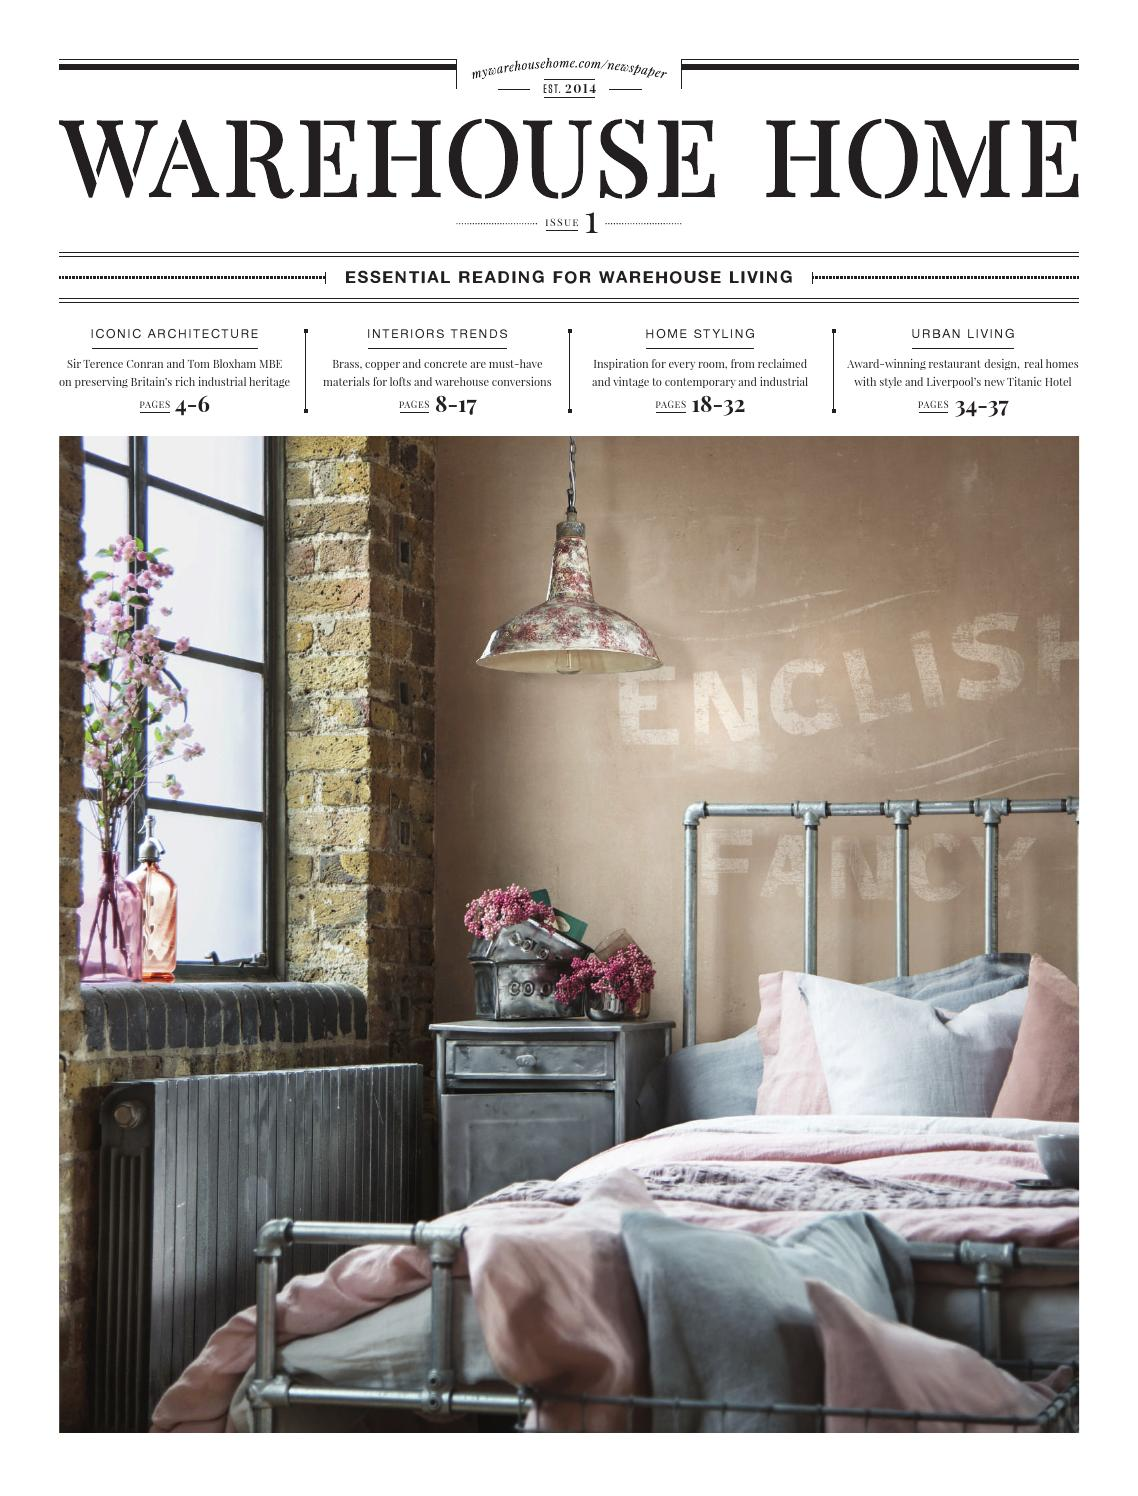 Chesterfield Sofa Riess Ambiente Warehouse Home Launch Issue